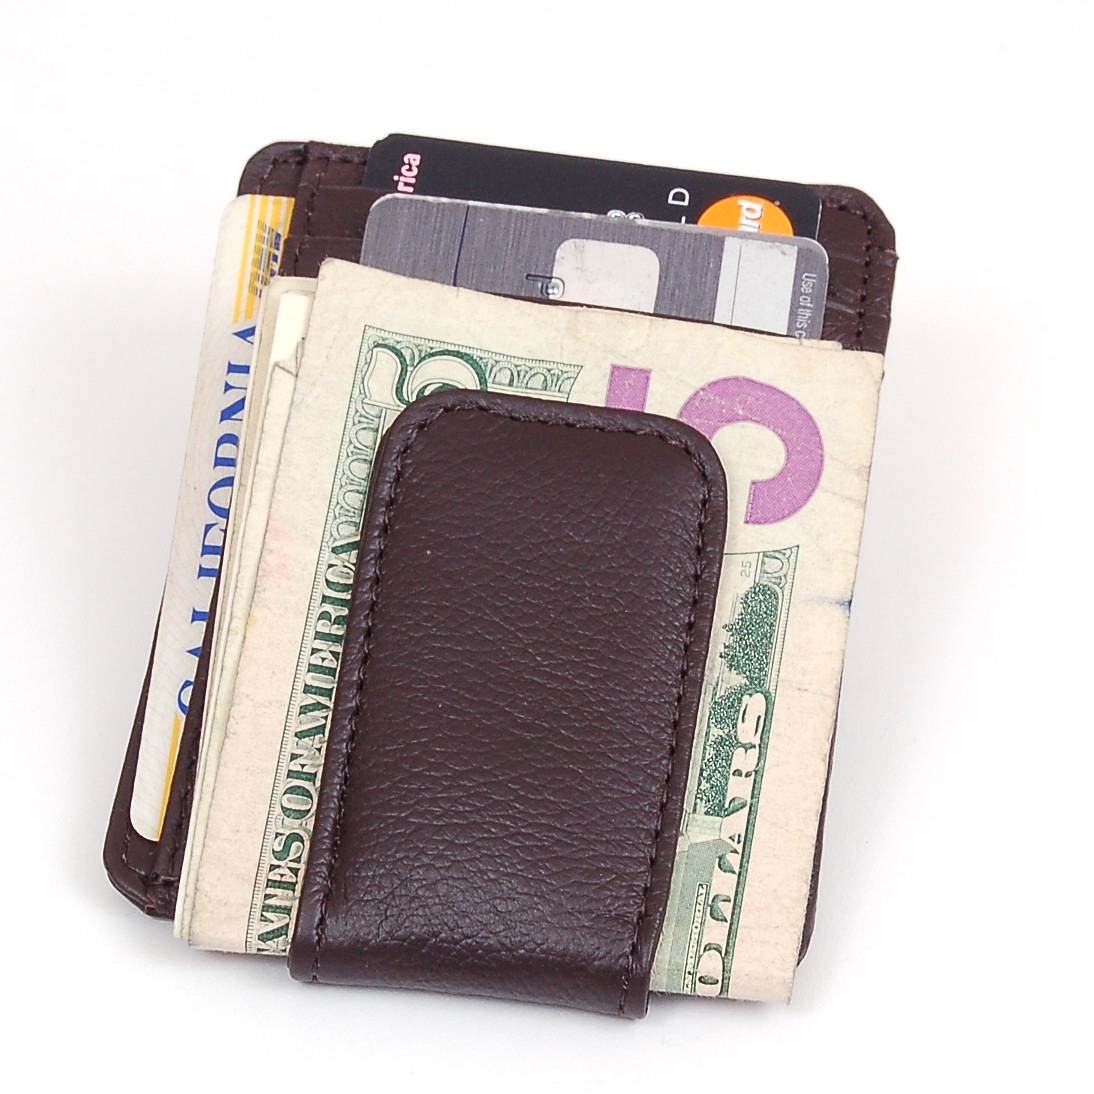 a7d55c267b6f SBR Designs - Mens Leather Wallet Money Clip Credit Card ID Holder Front  Pocket Thin Slim NEW - Walmart.com